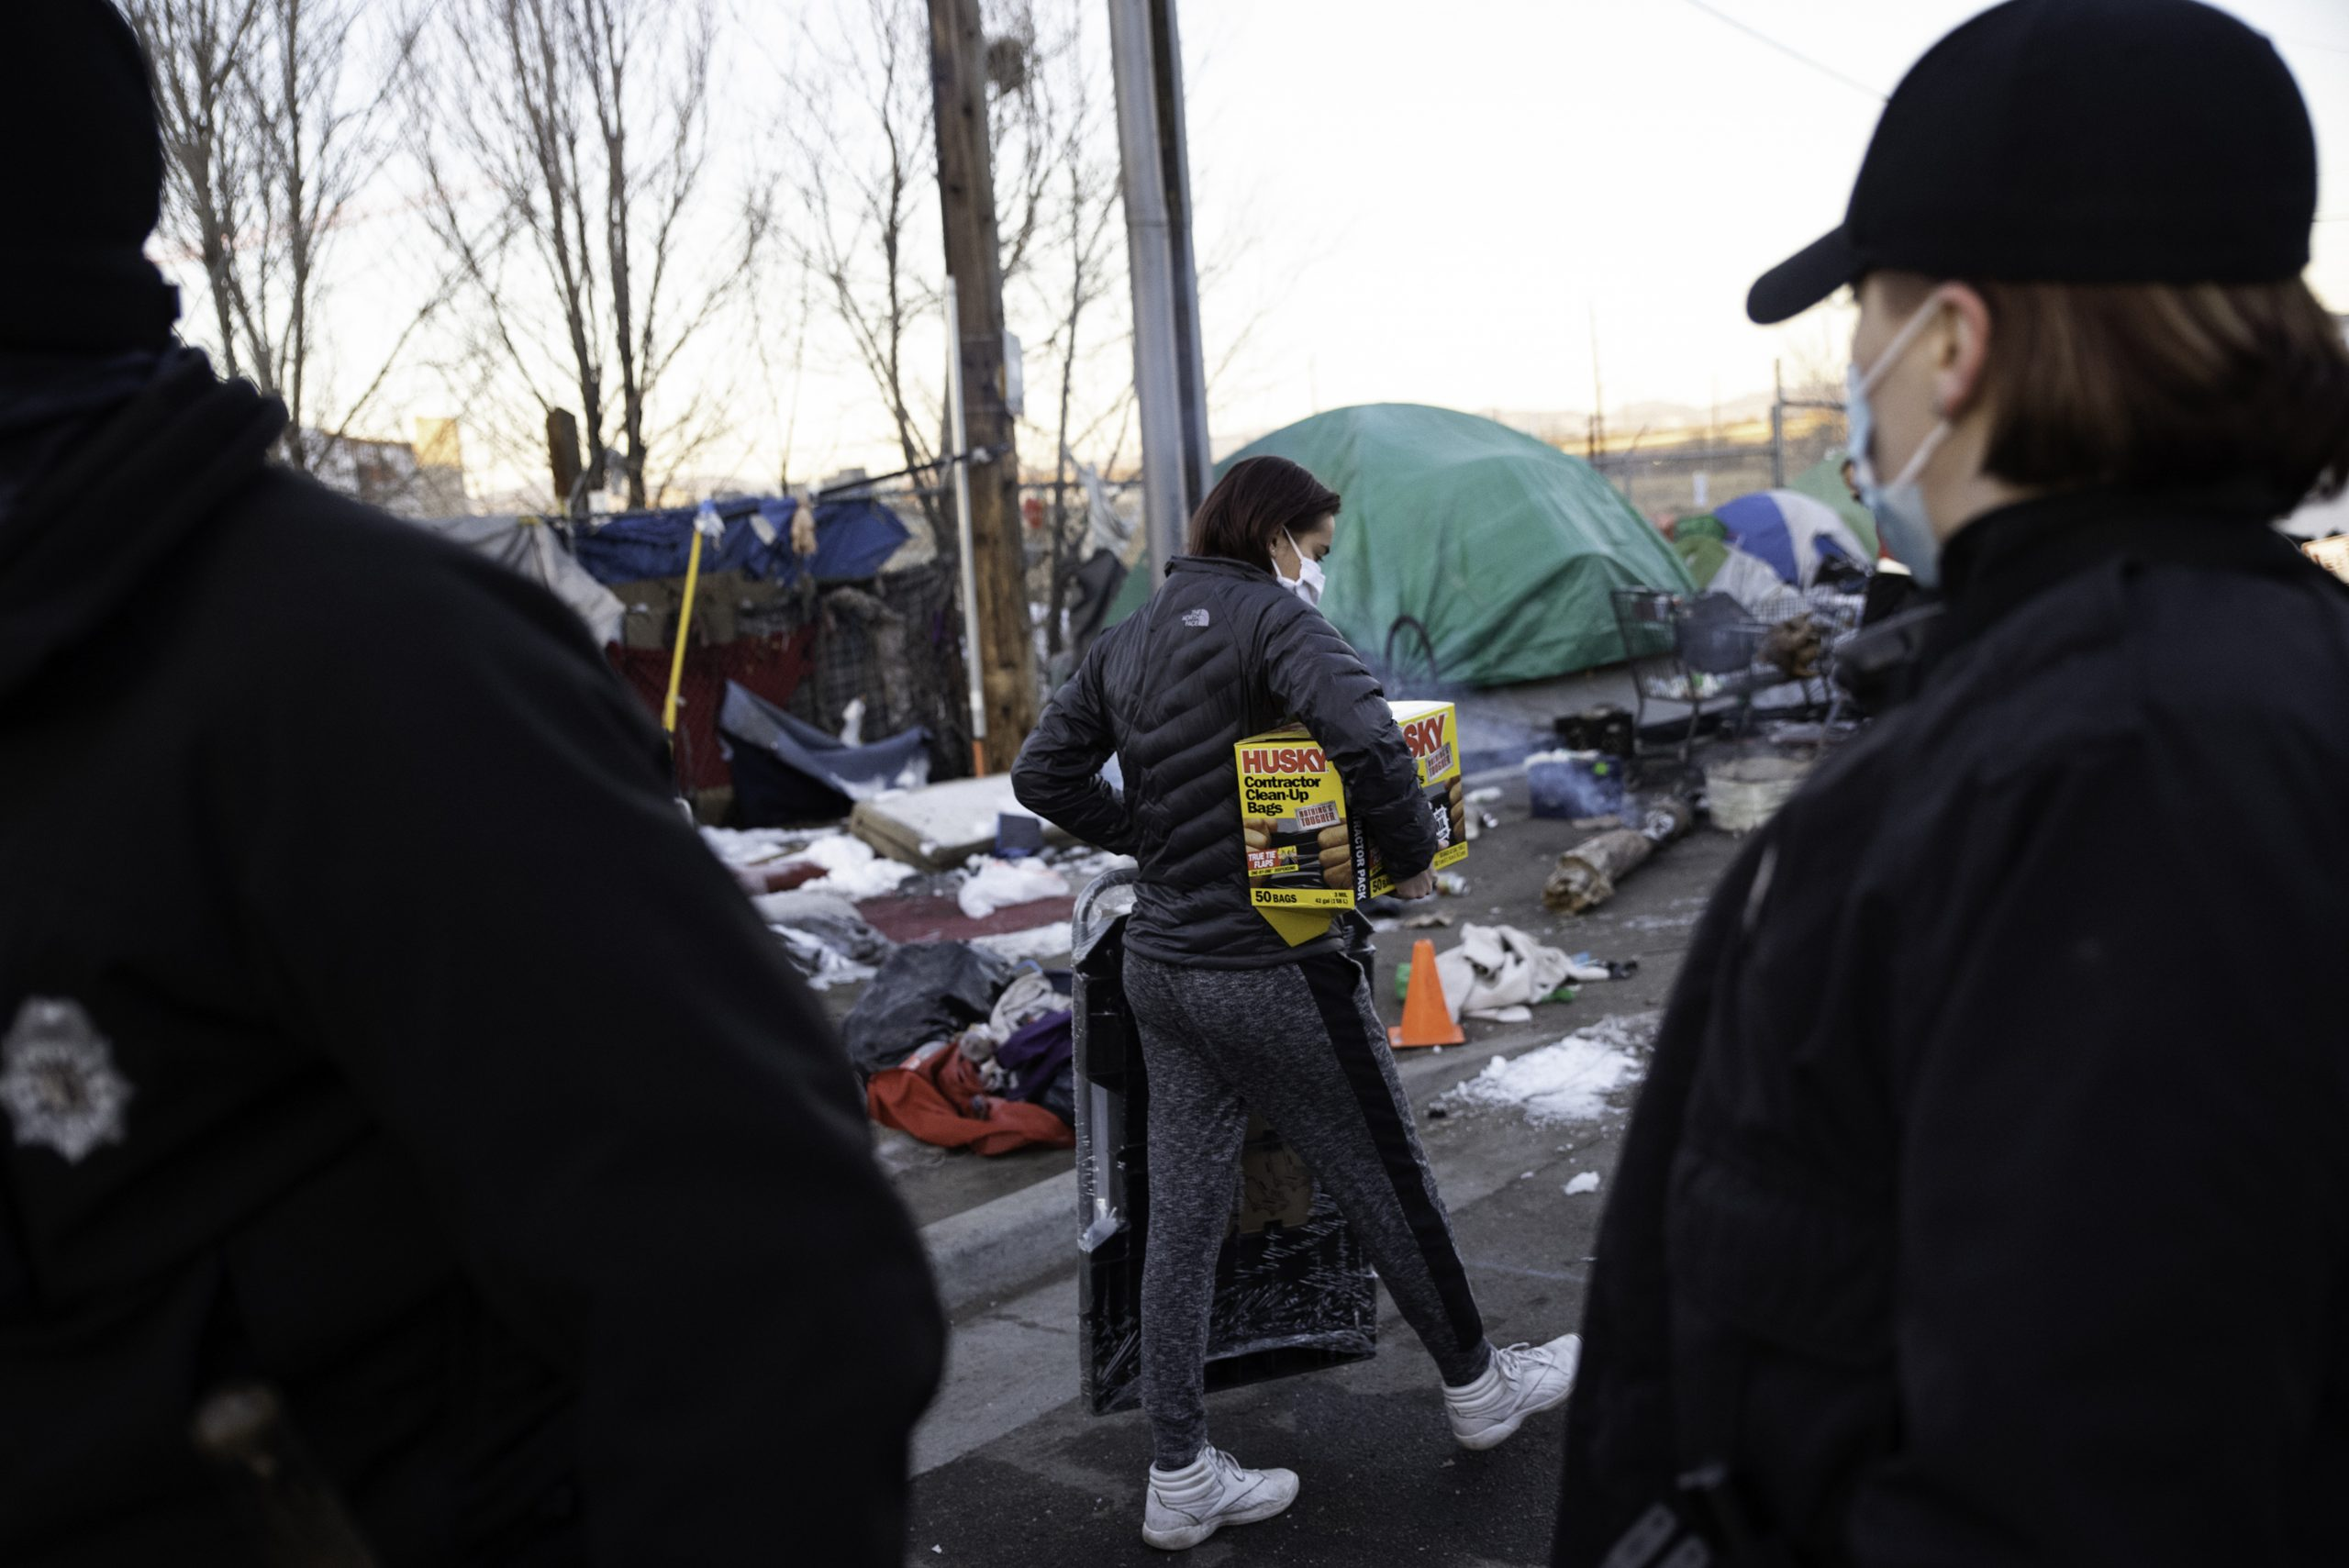 Early morning encampment sweep upends life for more than 100 houseless Denver residents